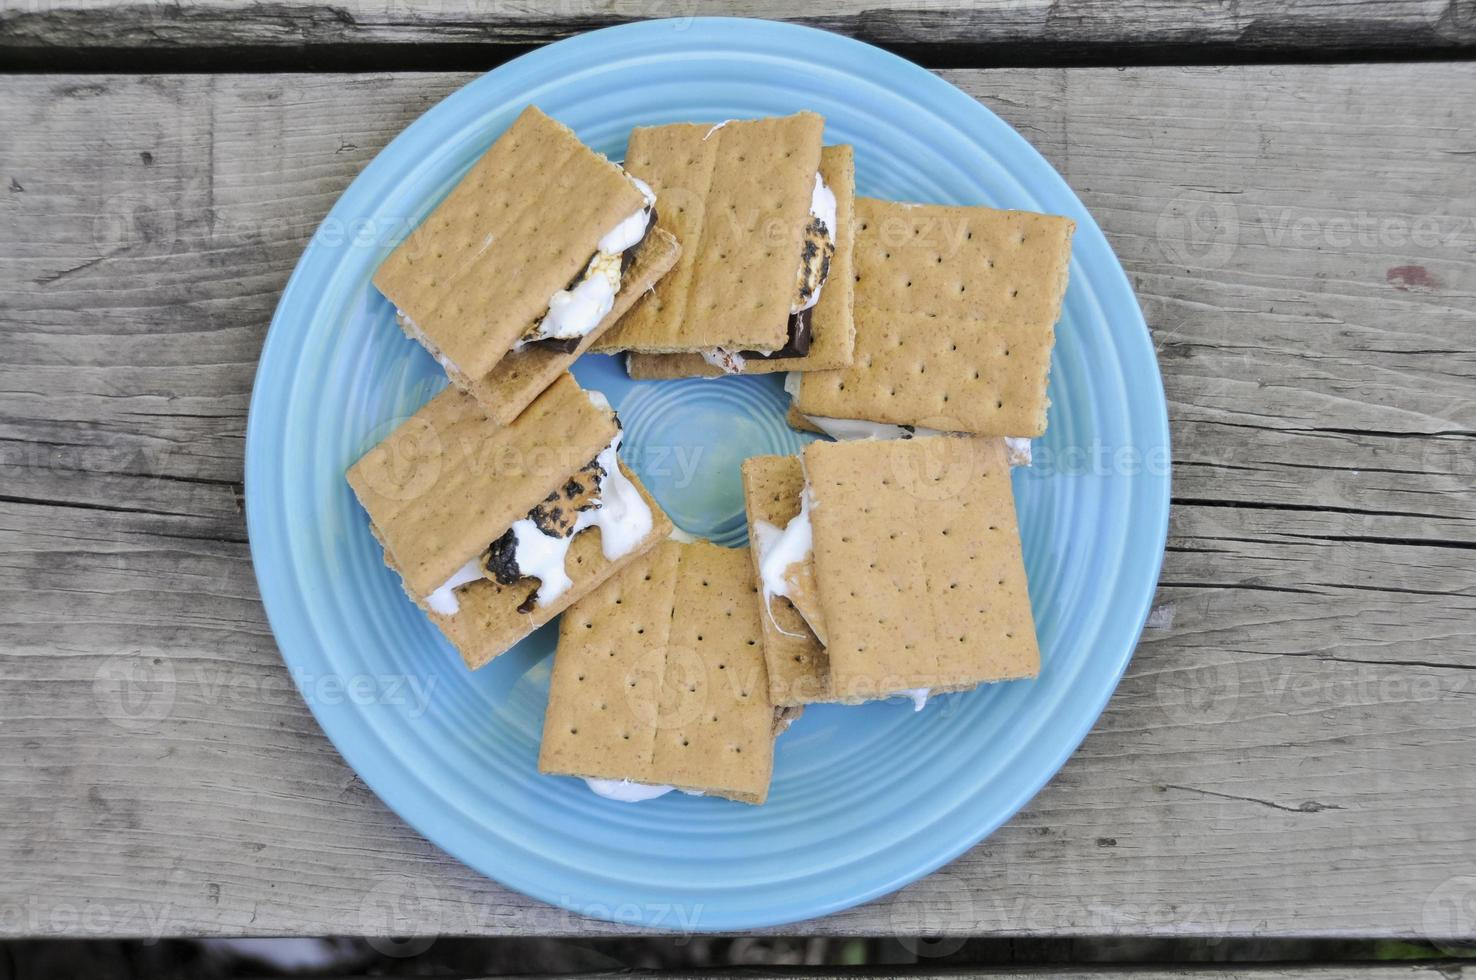 S'mores on a blue plate photo